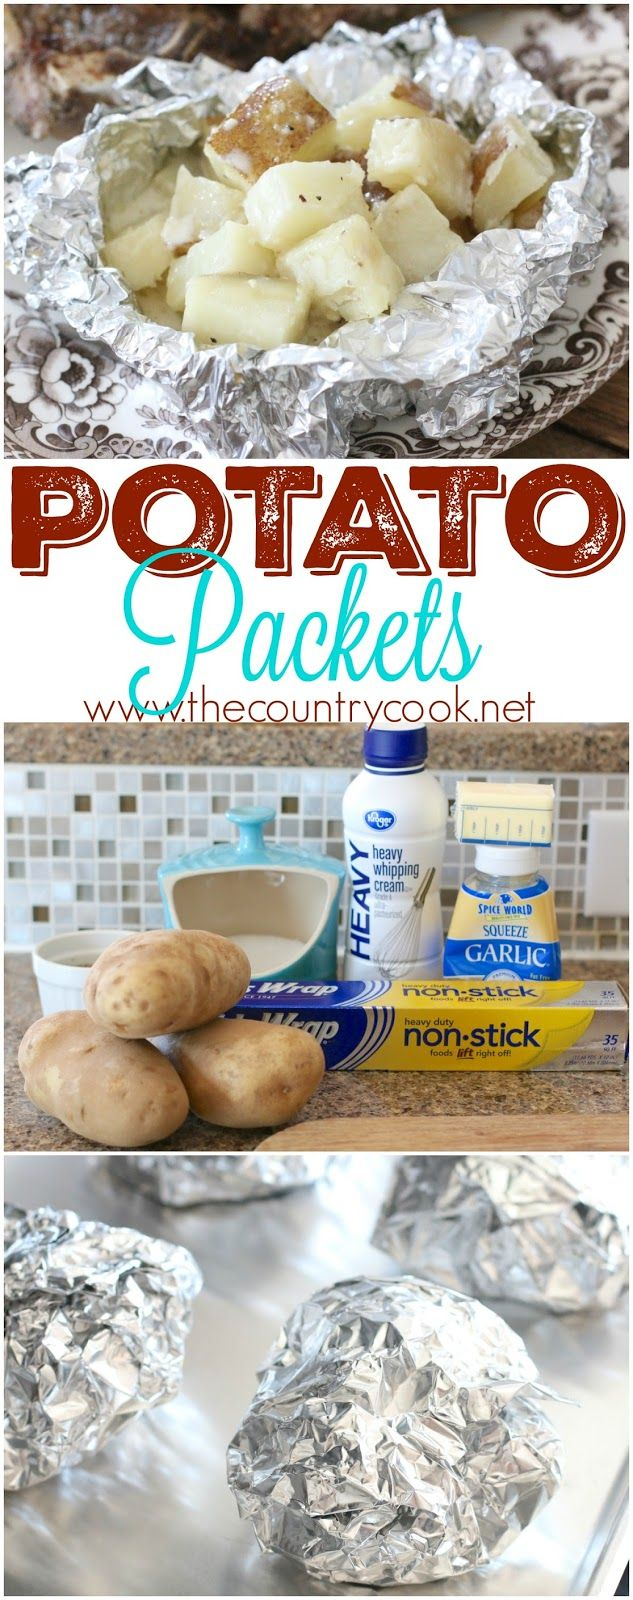 Foil Potato Packets recipe from The Country Cook. So easy to make but the flavor is outta this world good! Diced potatoes with butter, garlic and heavy cream. Plus, it's an easy clean up! Goes great with steak or grilled chicken!